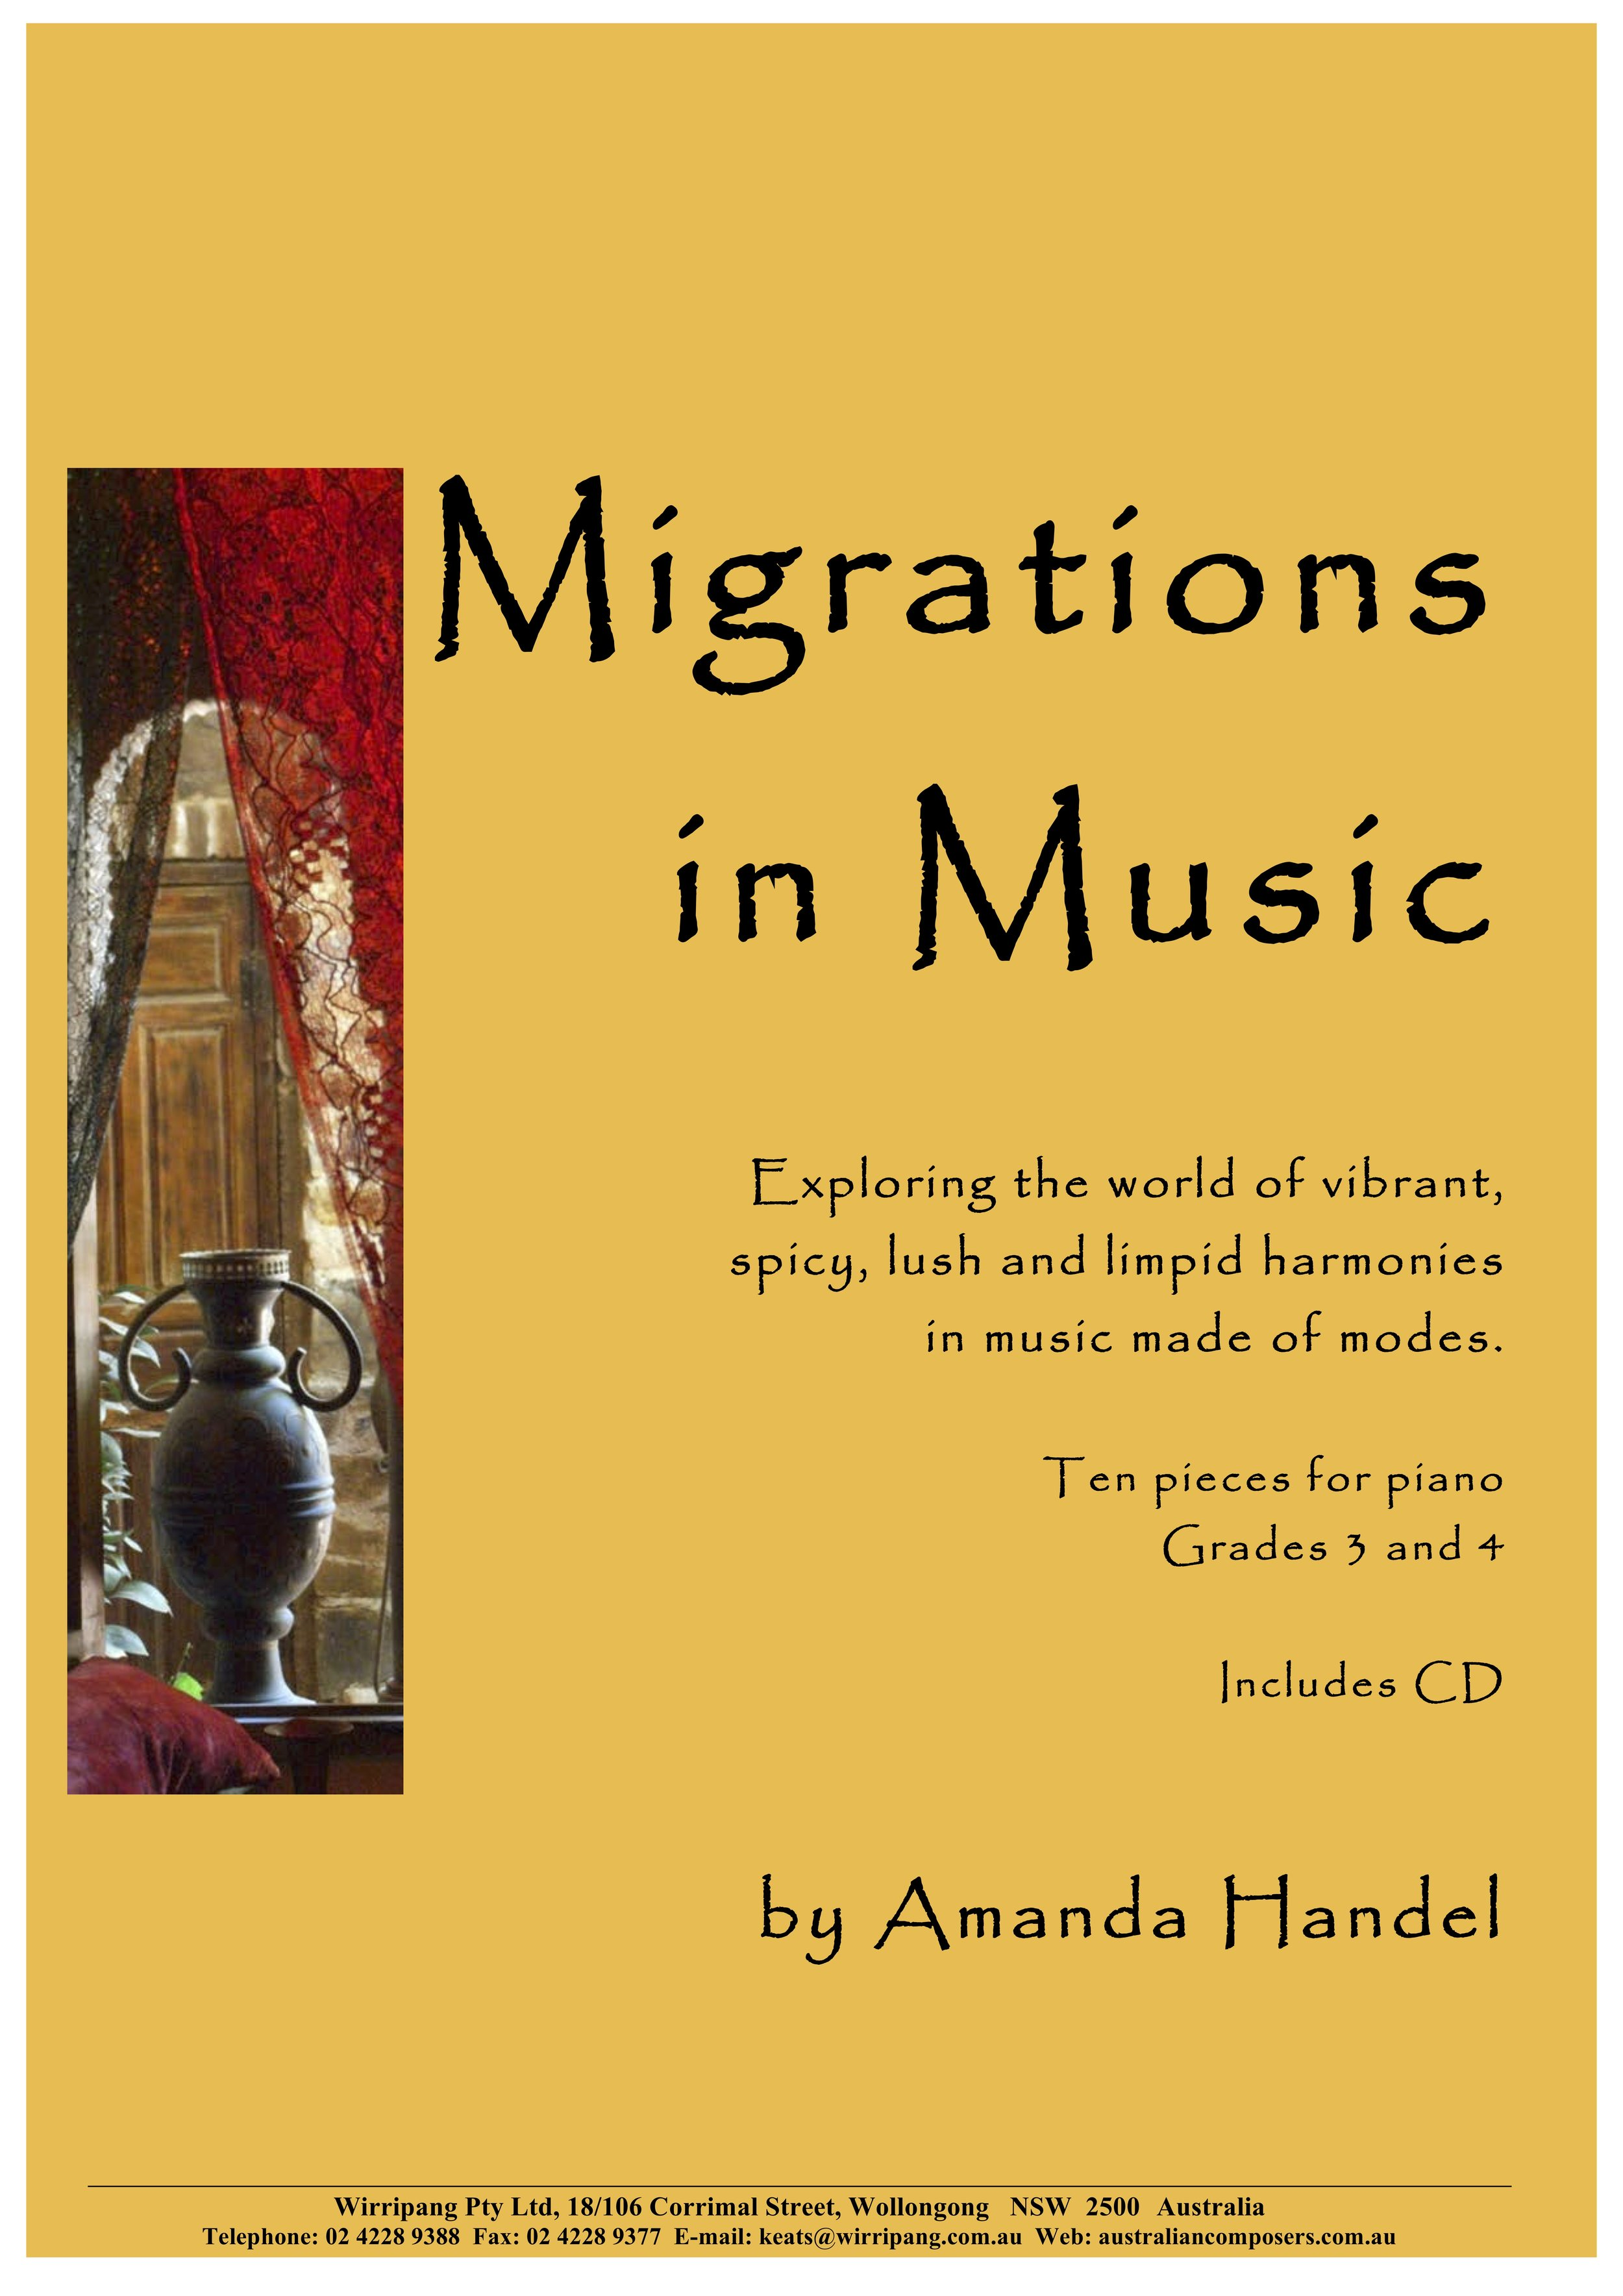 Migrations in Music 3-4 pdf cover.jpg